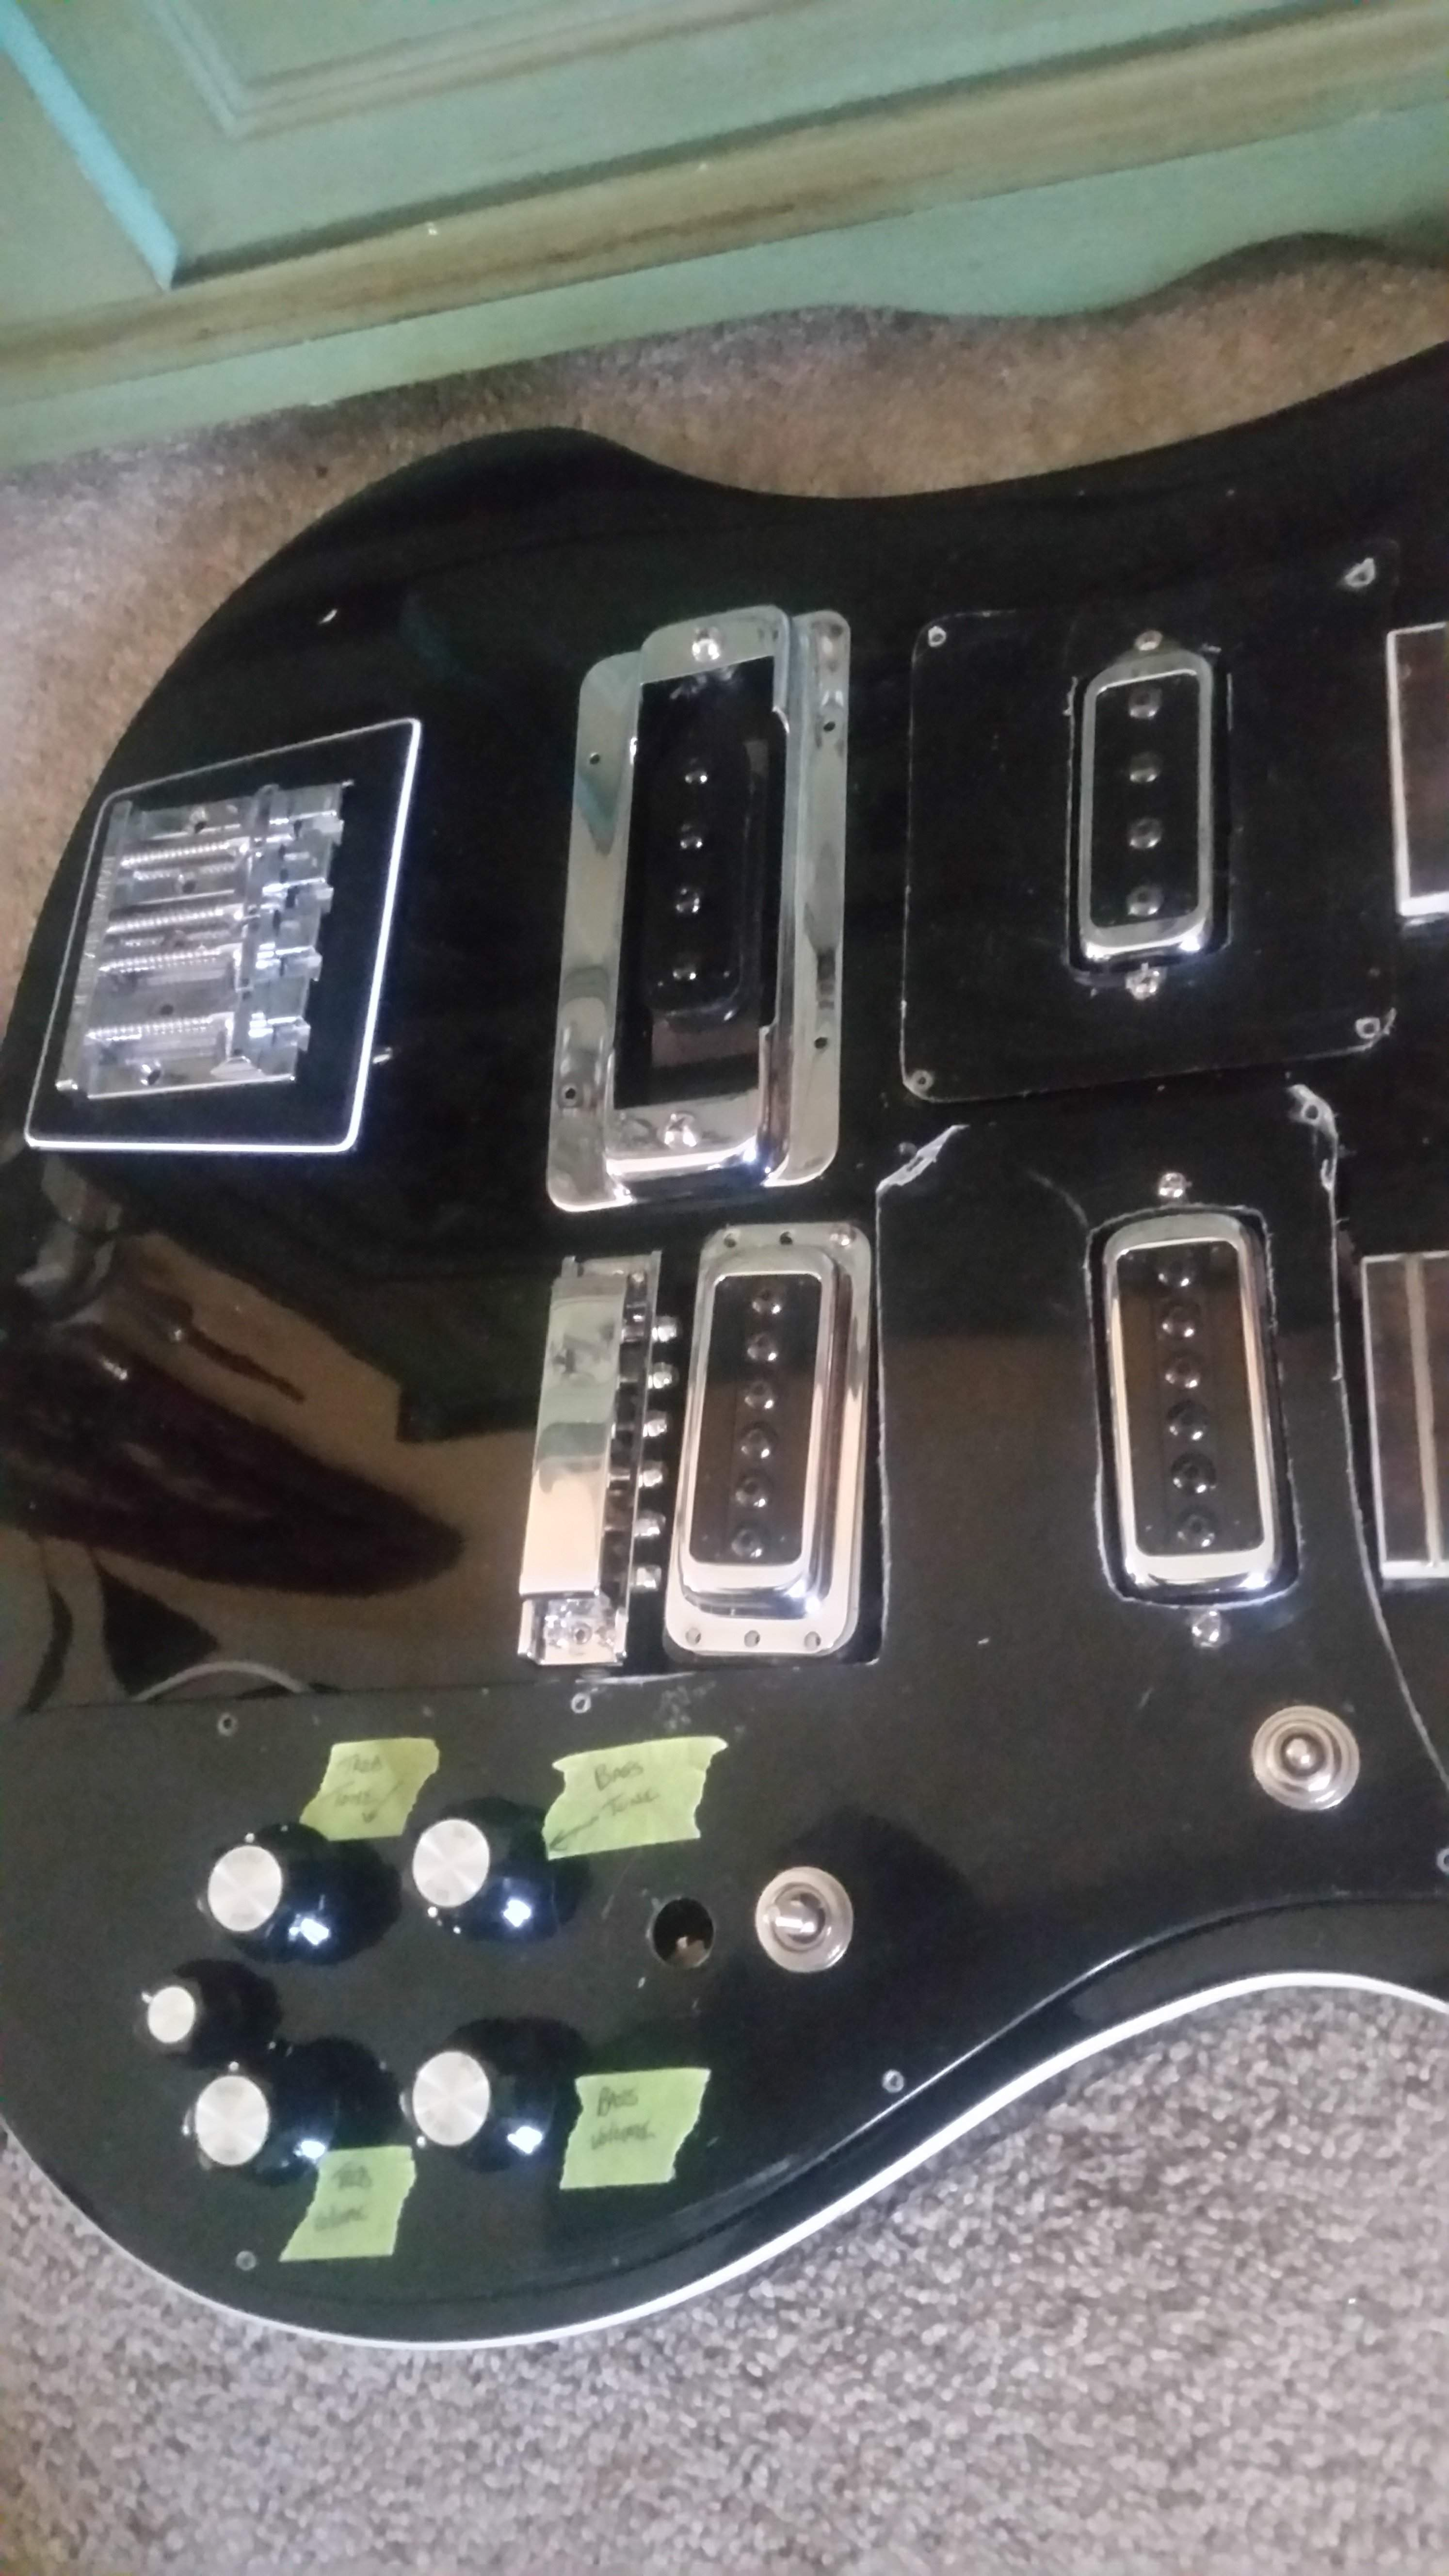 Thread Doubleneck Telecaster Wiring Need Help - Wiring ... on double bass diagram, guitar neck diagram, double pole double throw switch diagram, double neck dimensions, double switch wiring diagram, double humbucker wiring-diagram, double switch wiring pigtailing wires,